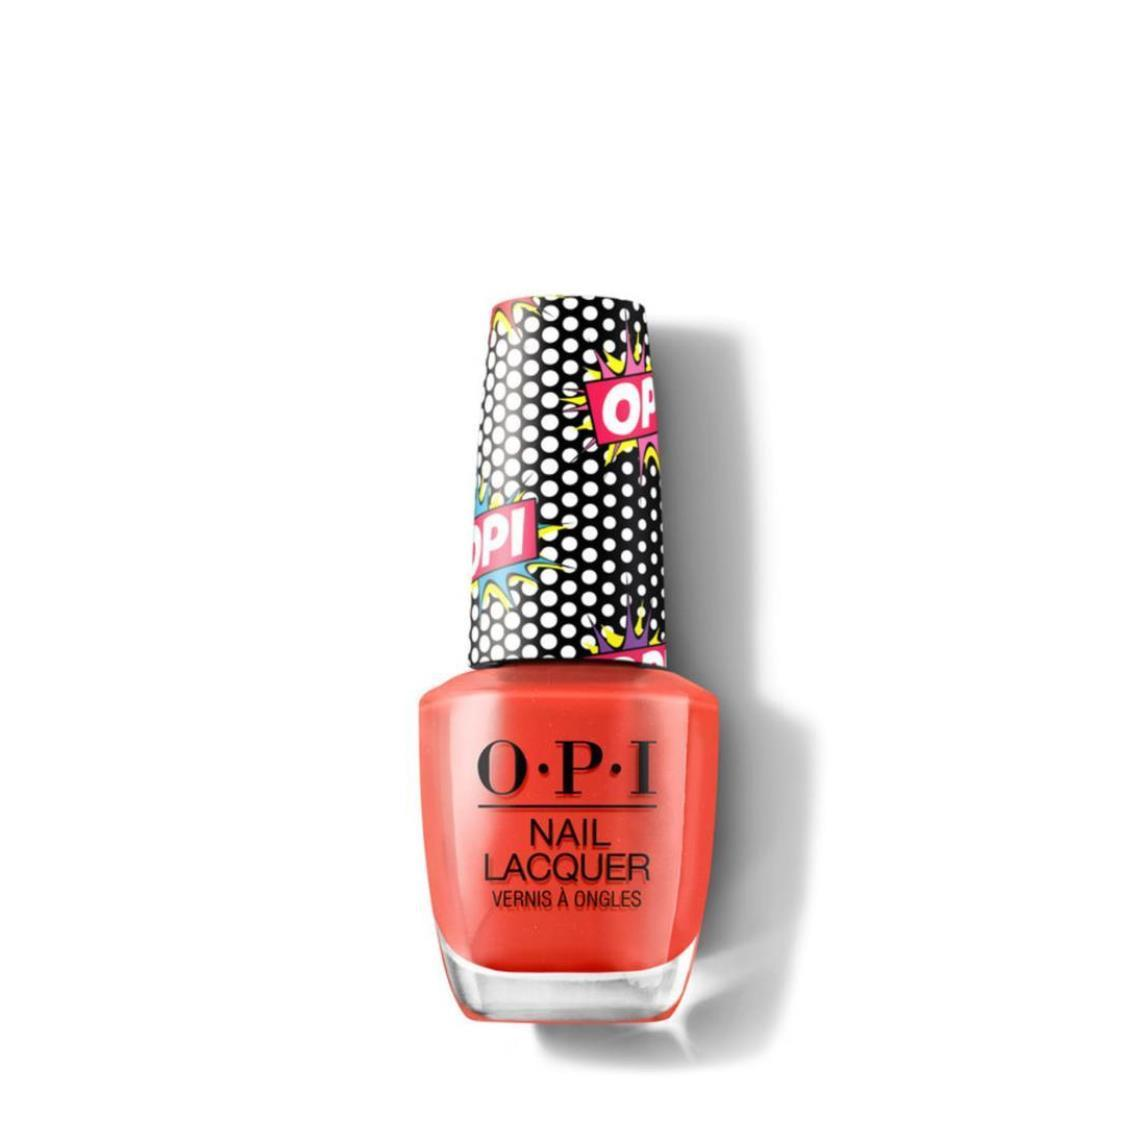 Bubbles Collection 2018 Nail Lacquer OPI Pops 15ml